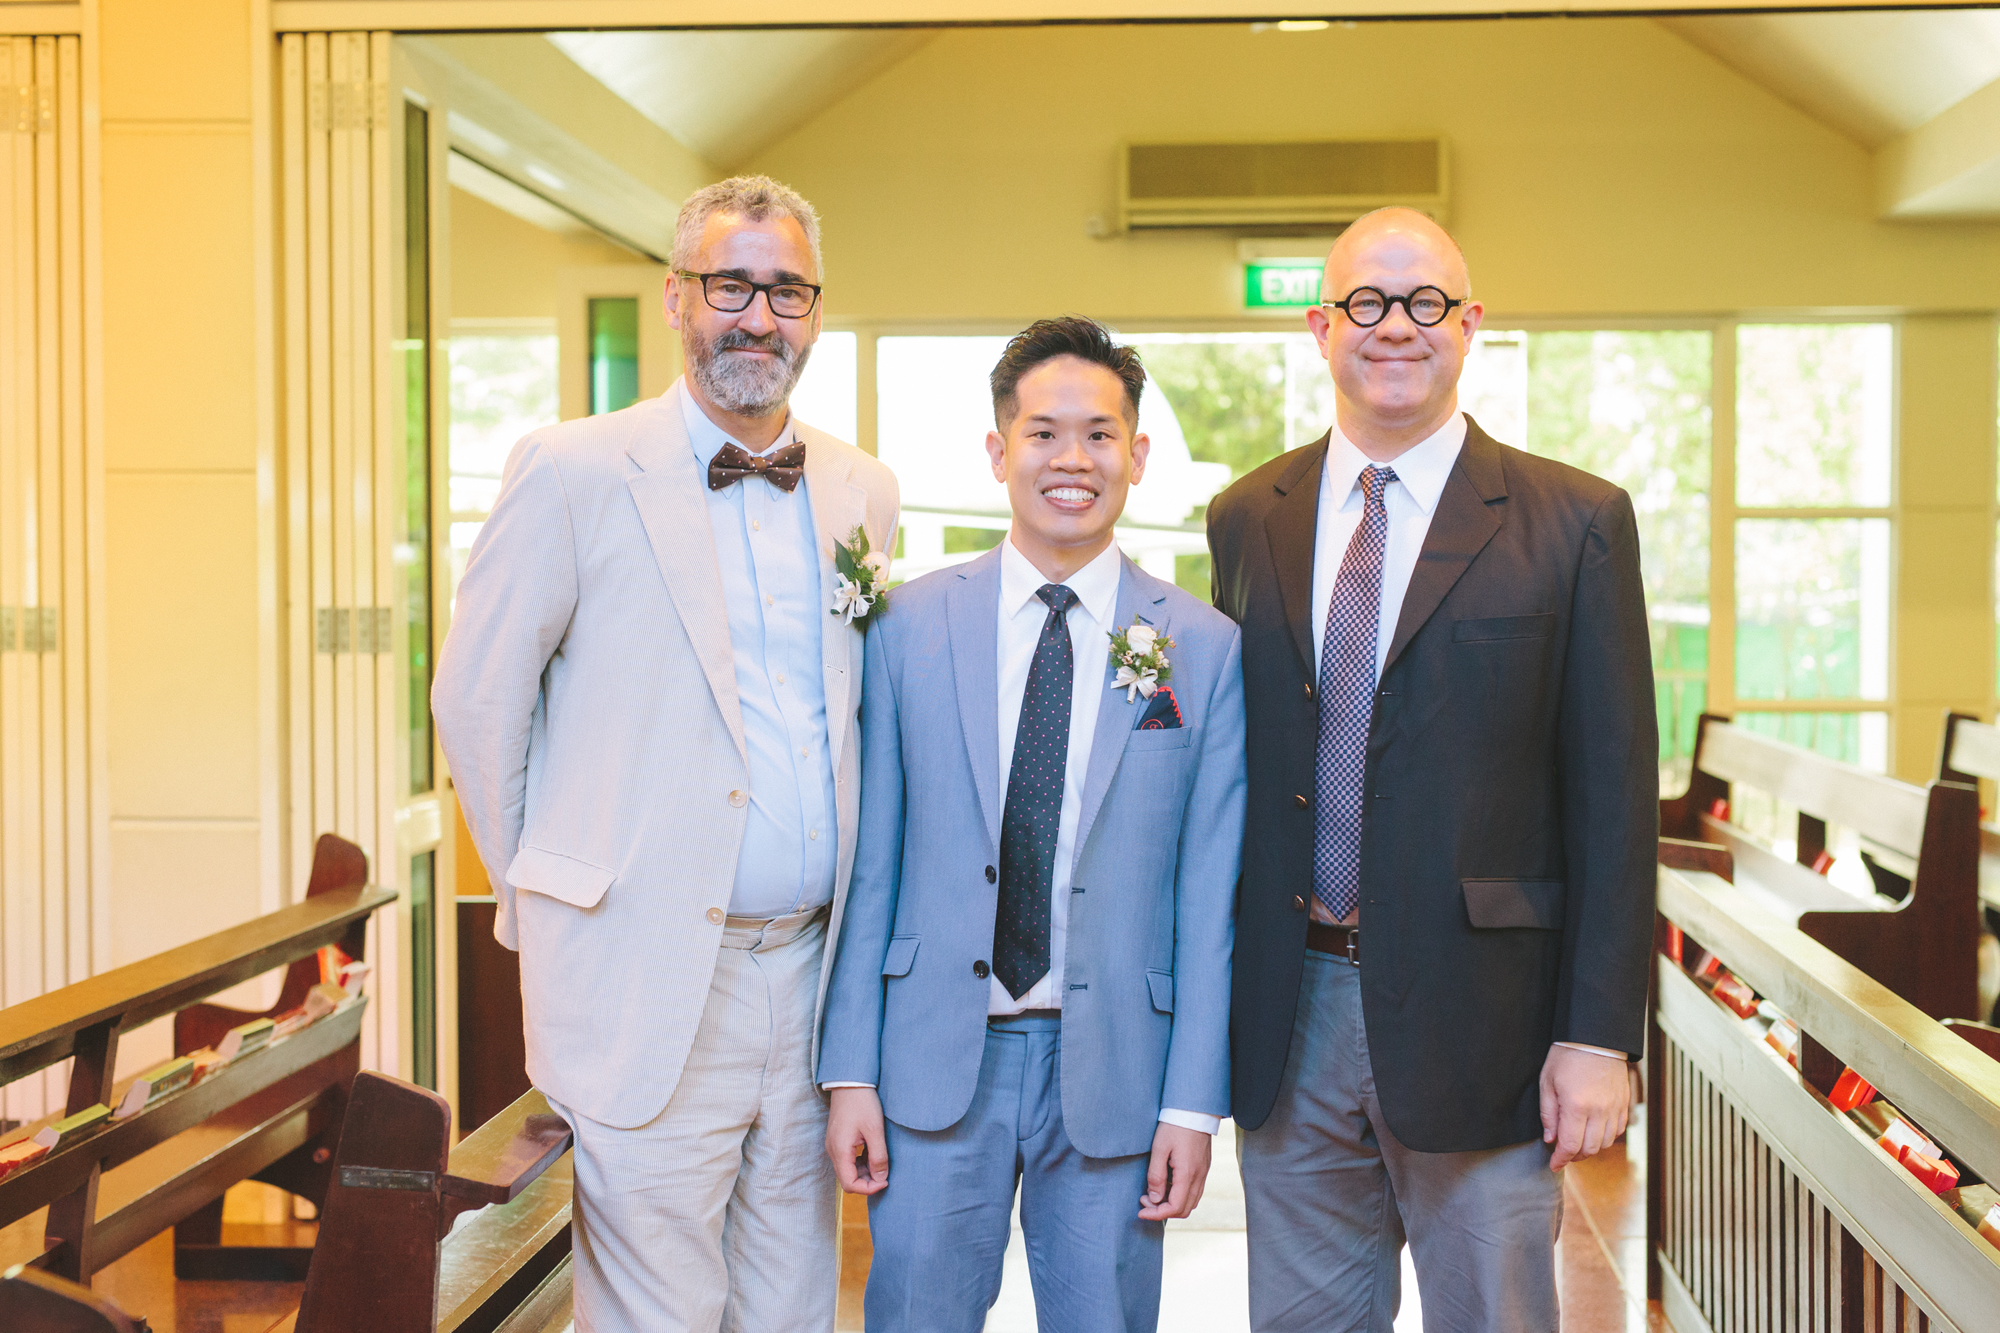 [From left to right] Professor Barney Bate, Professor Andrew Hui and Professor Matthew Walker at Mr. Hui's wedding. (Photo Credit to Professor Andrew Hui)